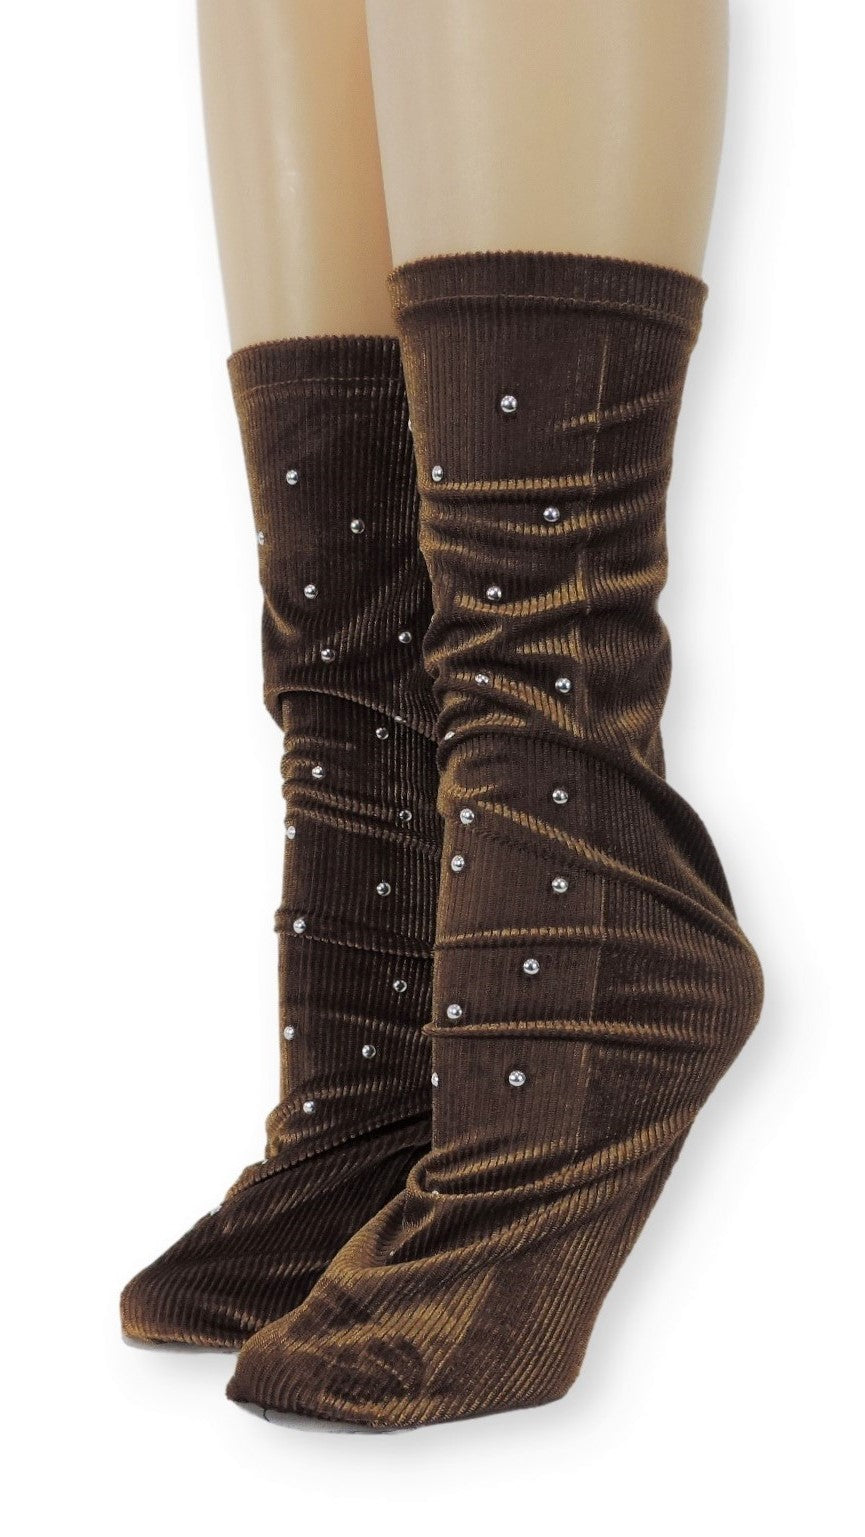 Ribbed Brown Velvet Socks with Beads